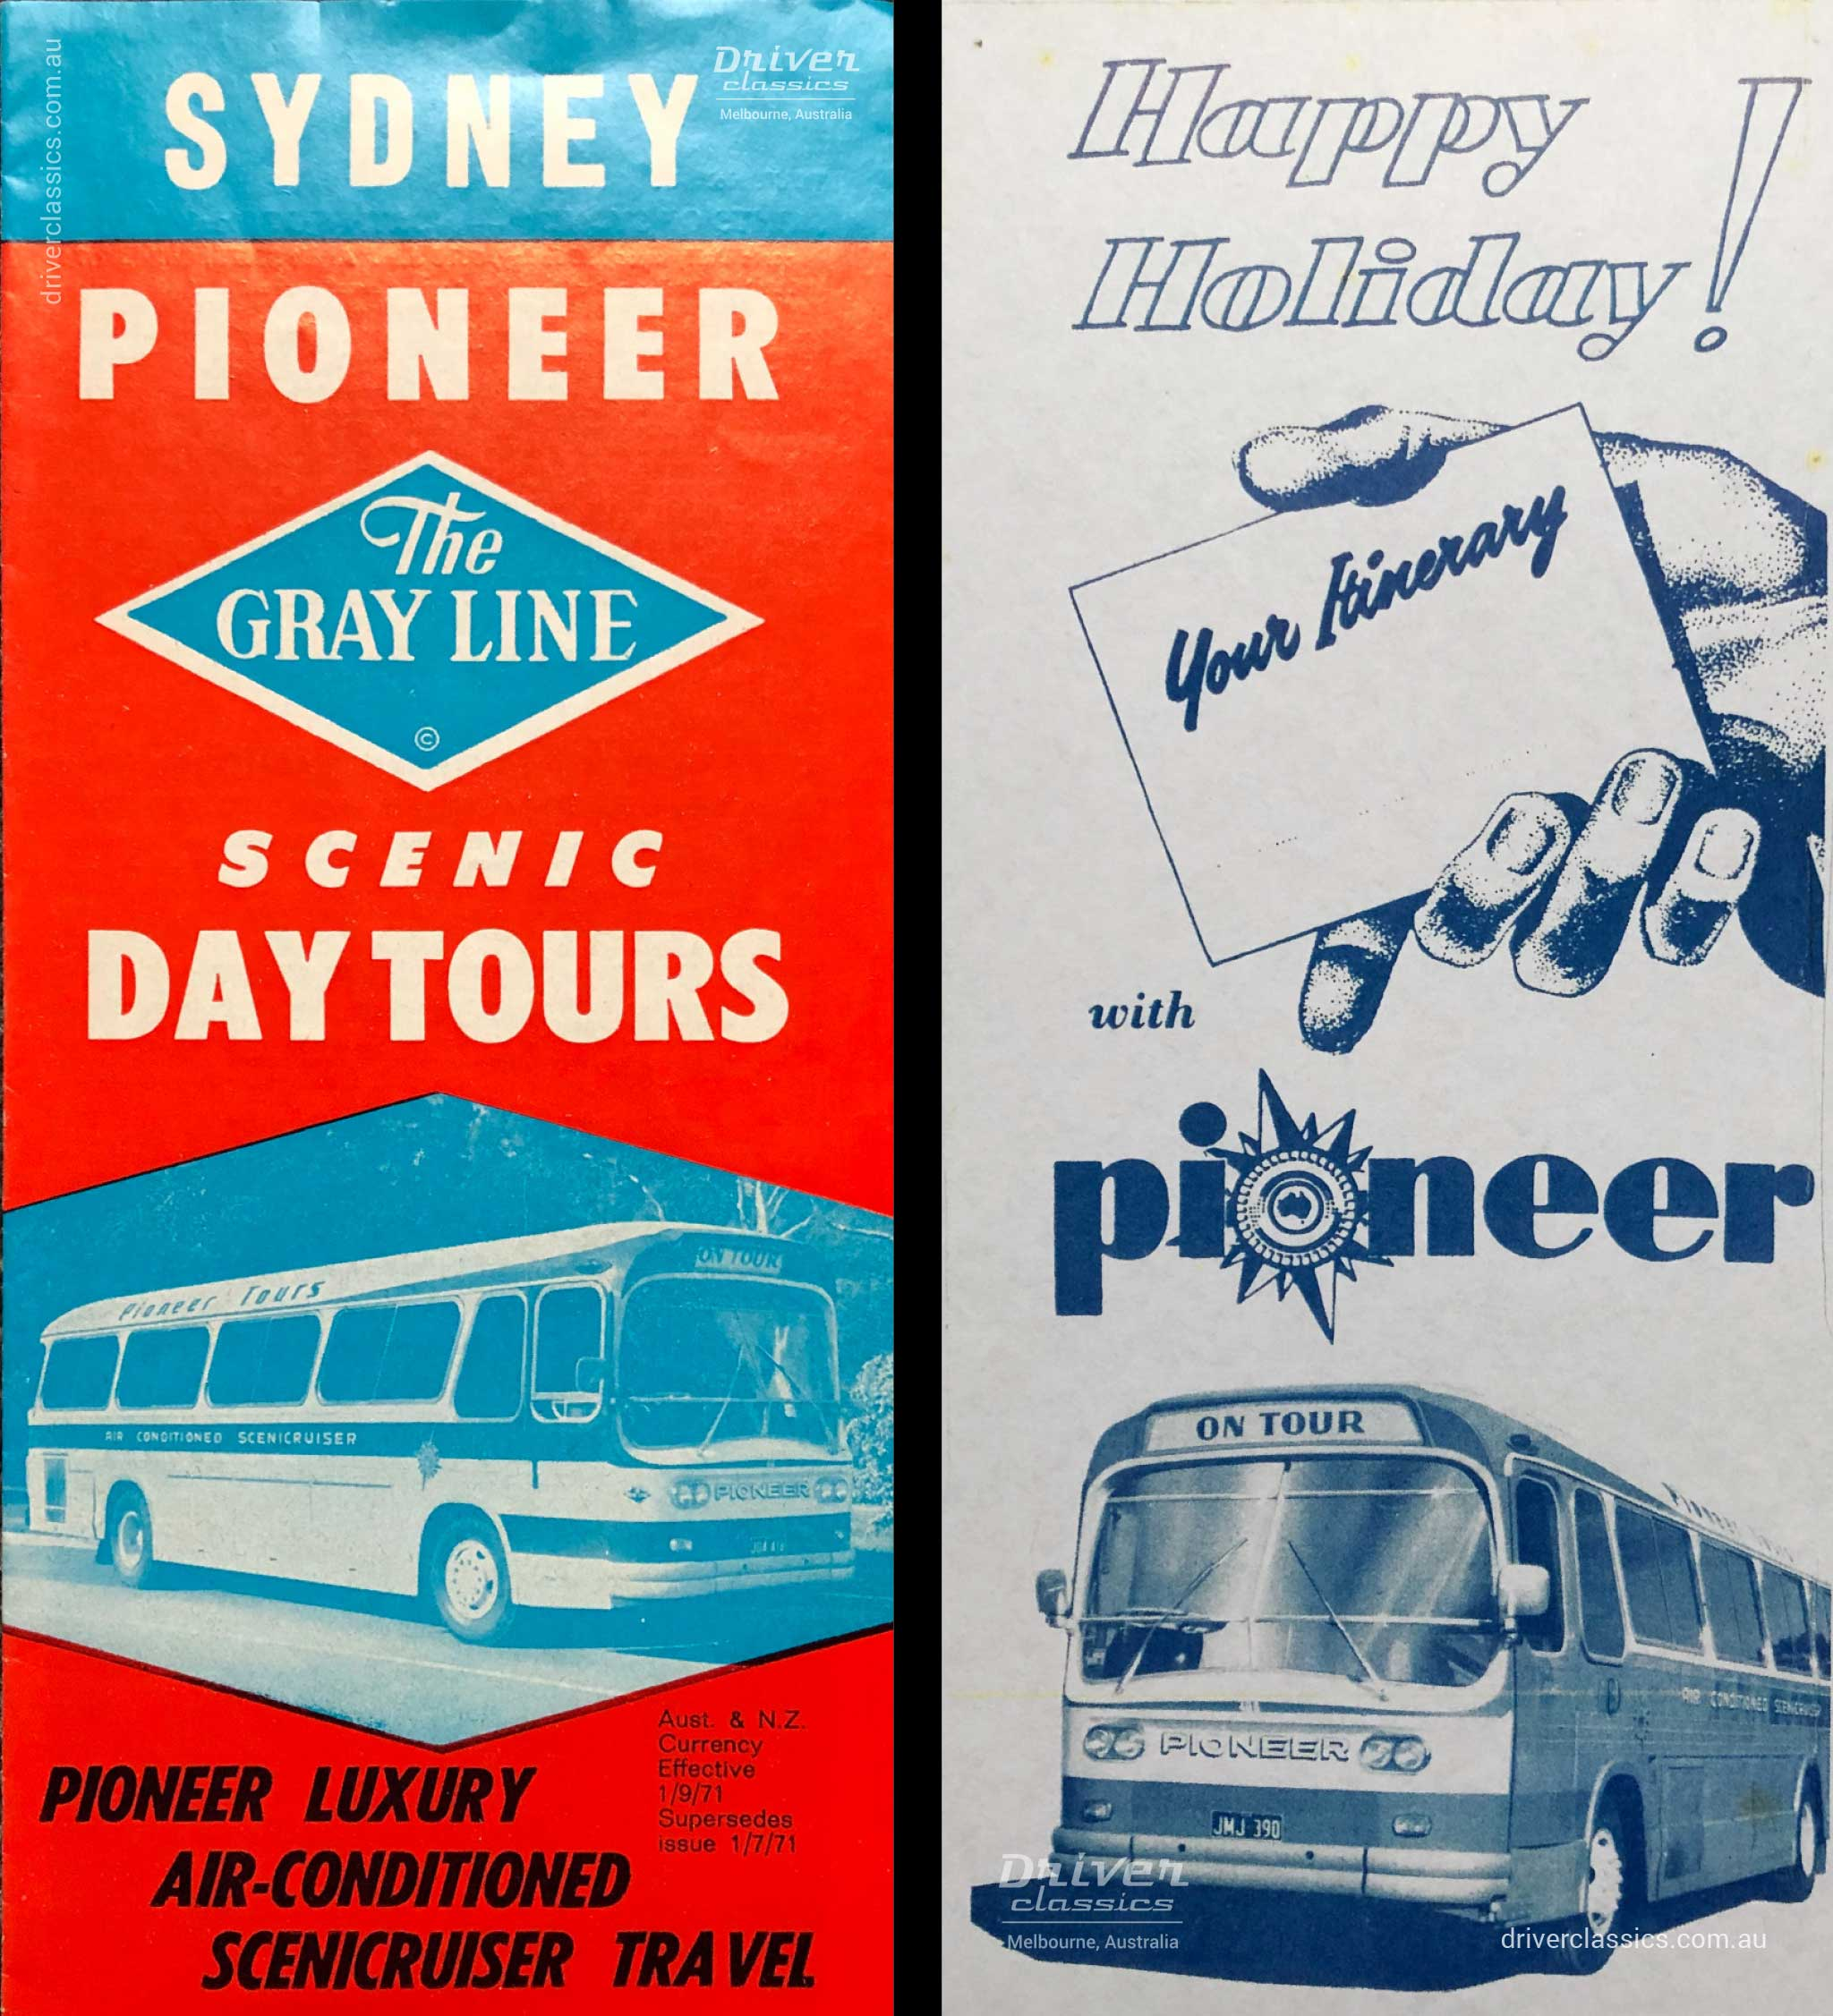 Pioneer Sydney Day Tour brochure 1971, Pioneer advertising, circa late 1960s, both featuring Ansair Scenicruiser bus.